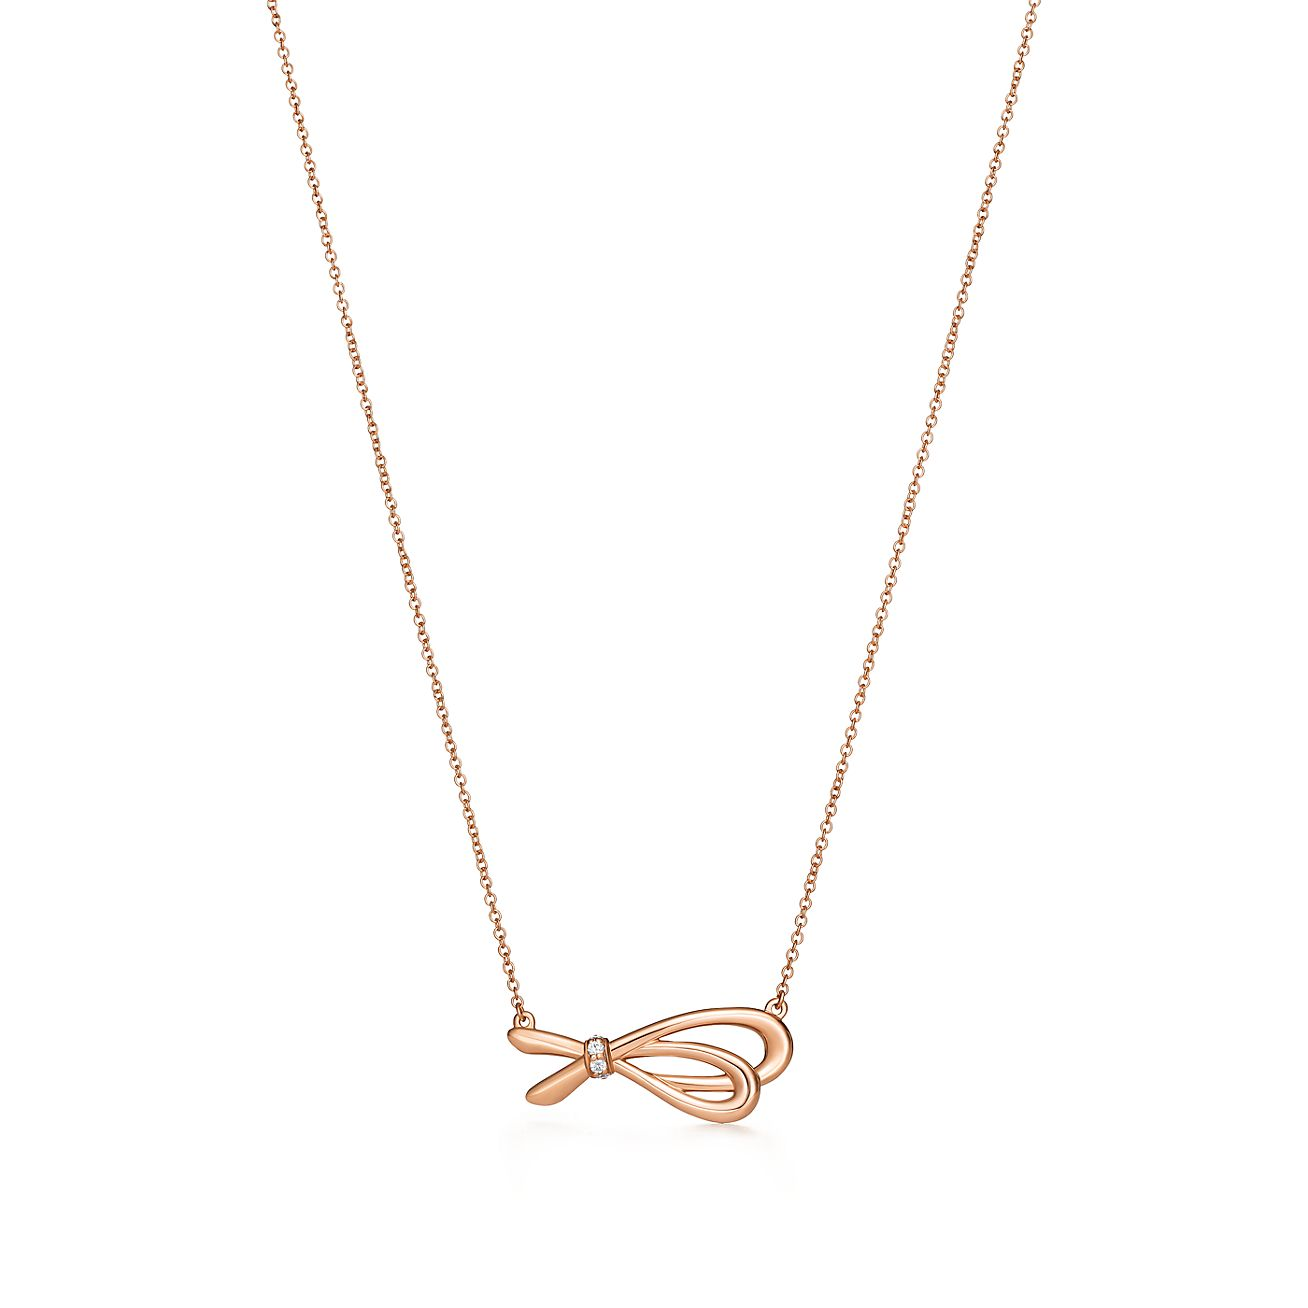 Tiffany bow pendant in 18k rose gold with diamonds tiffany co tiffany bowpendant aloadofball Images